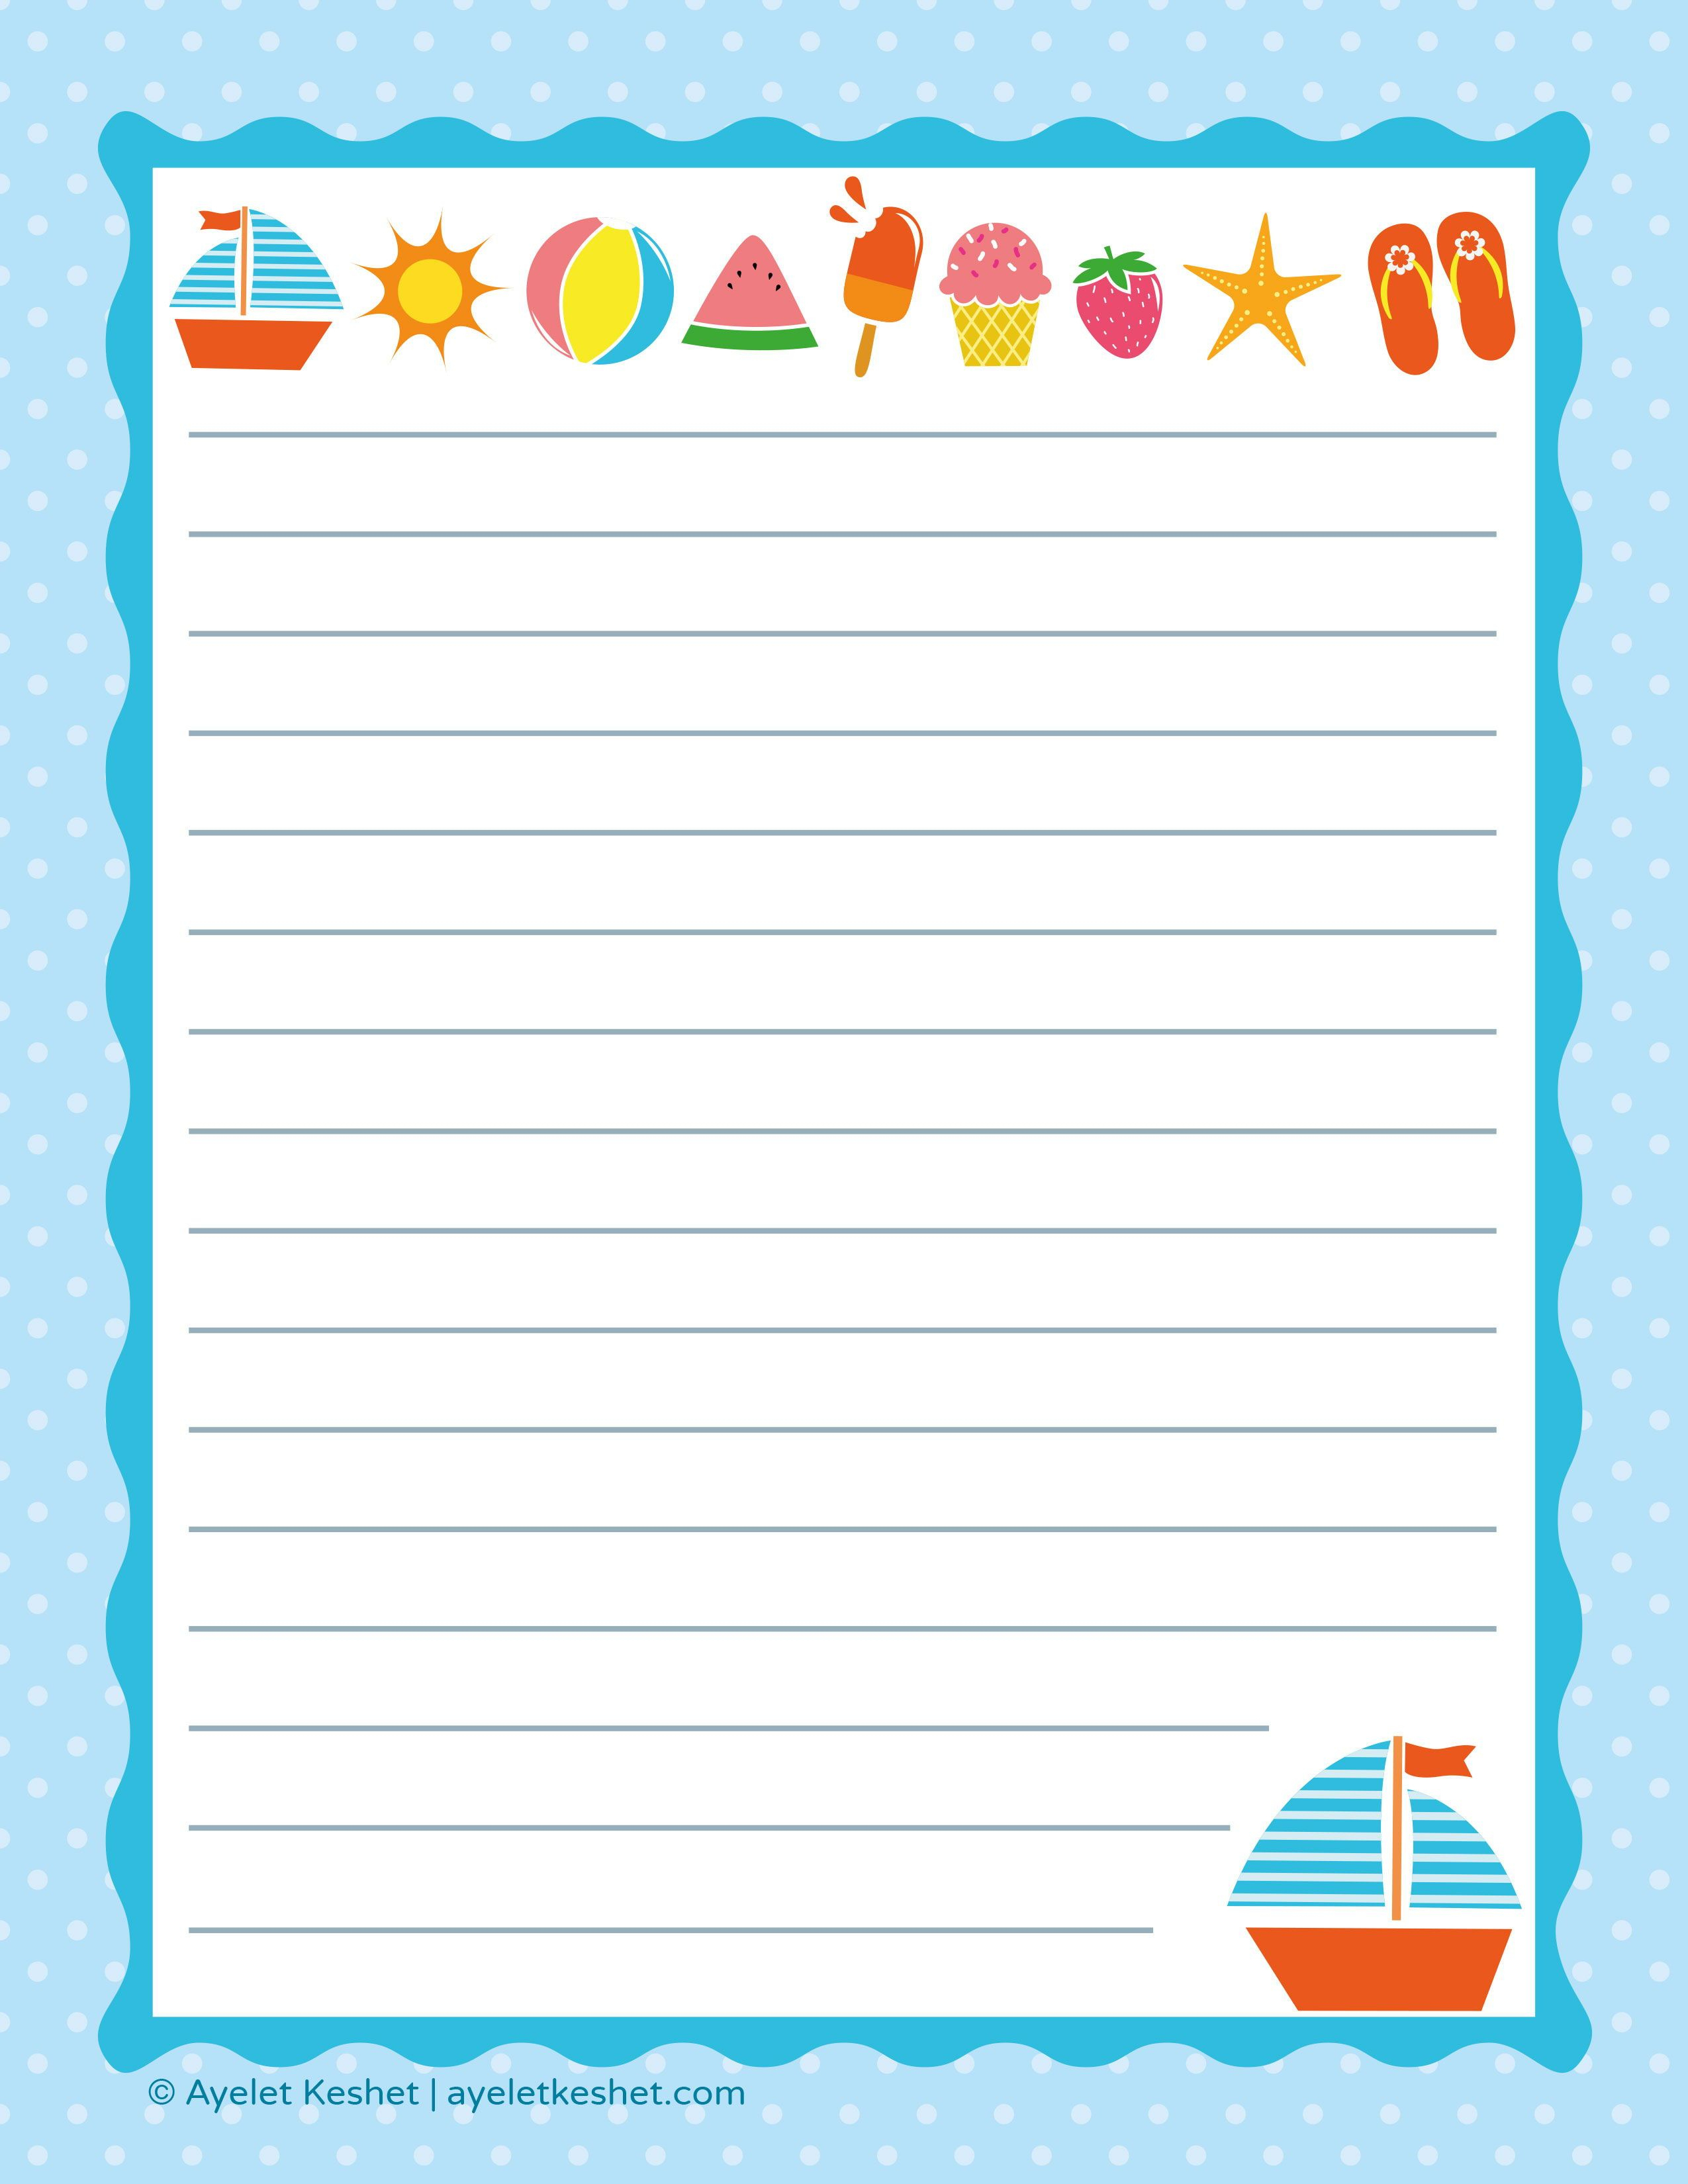 Free Printable Letter Paper | Printables To Go | Pinterest - Free Printable Writing Paper For Adults